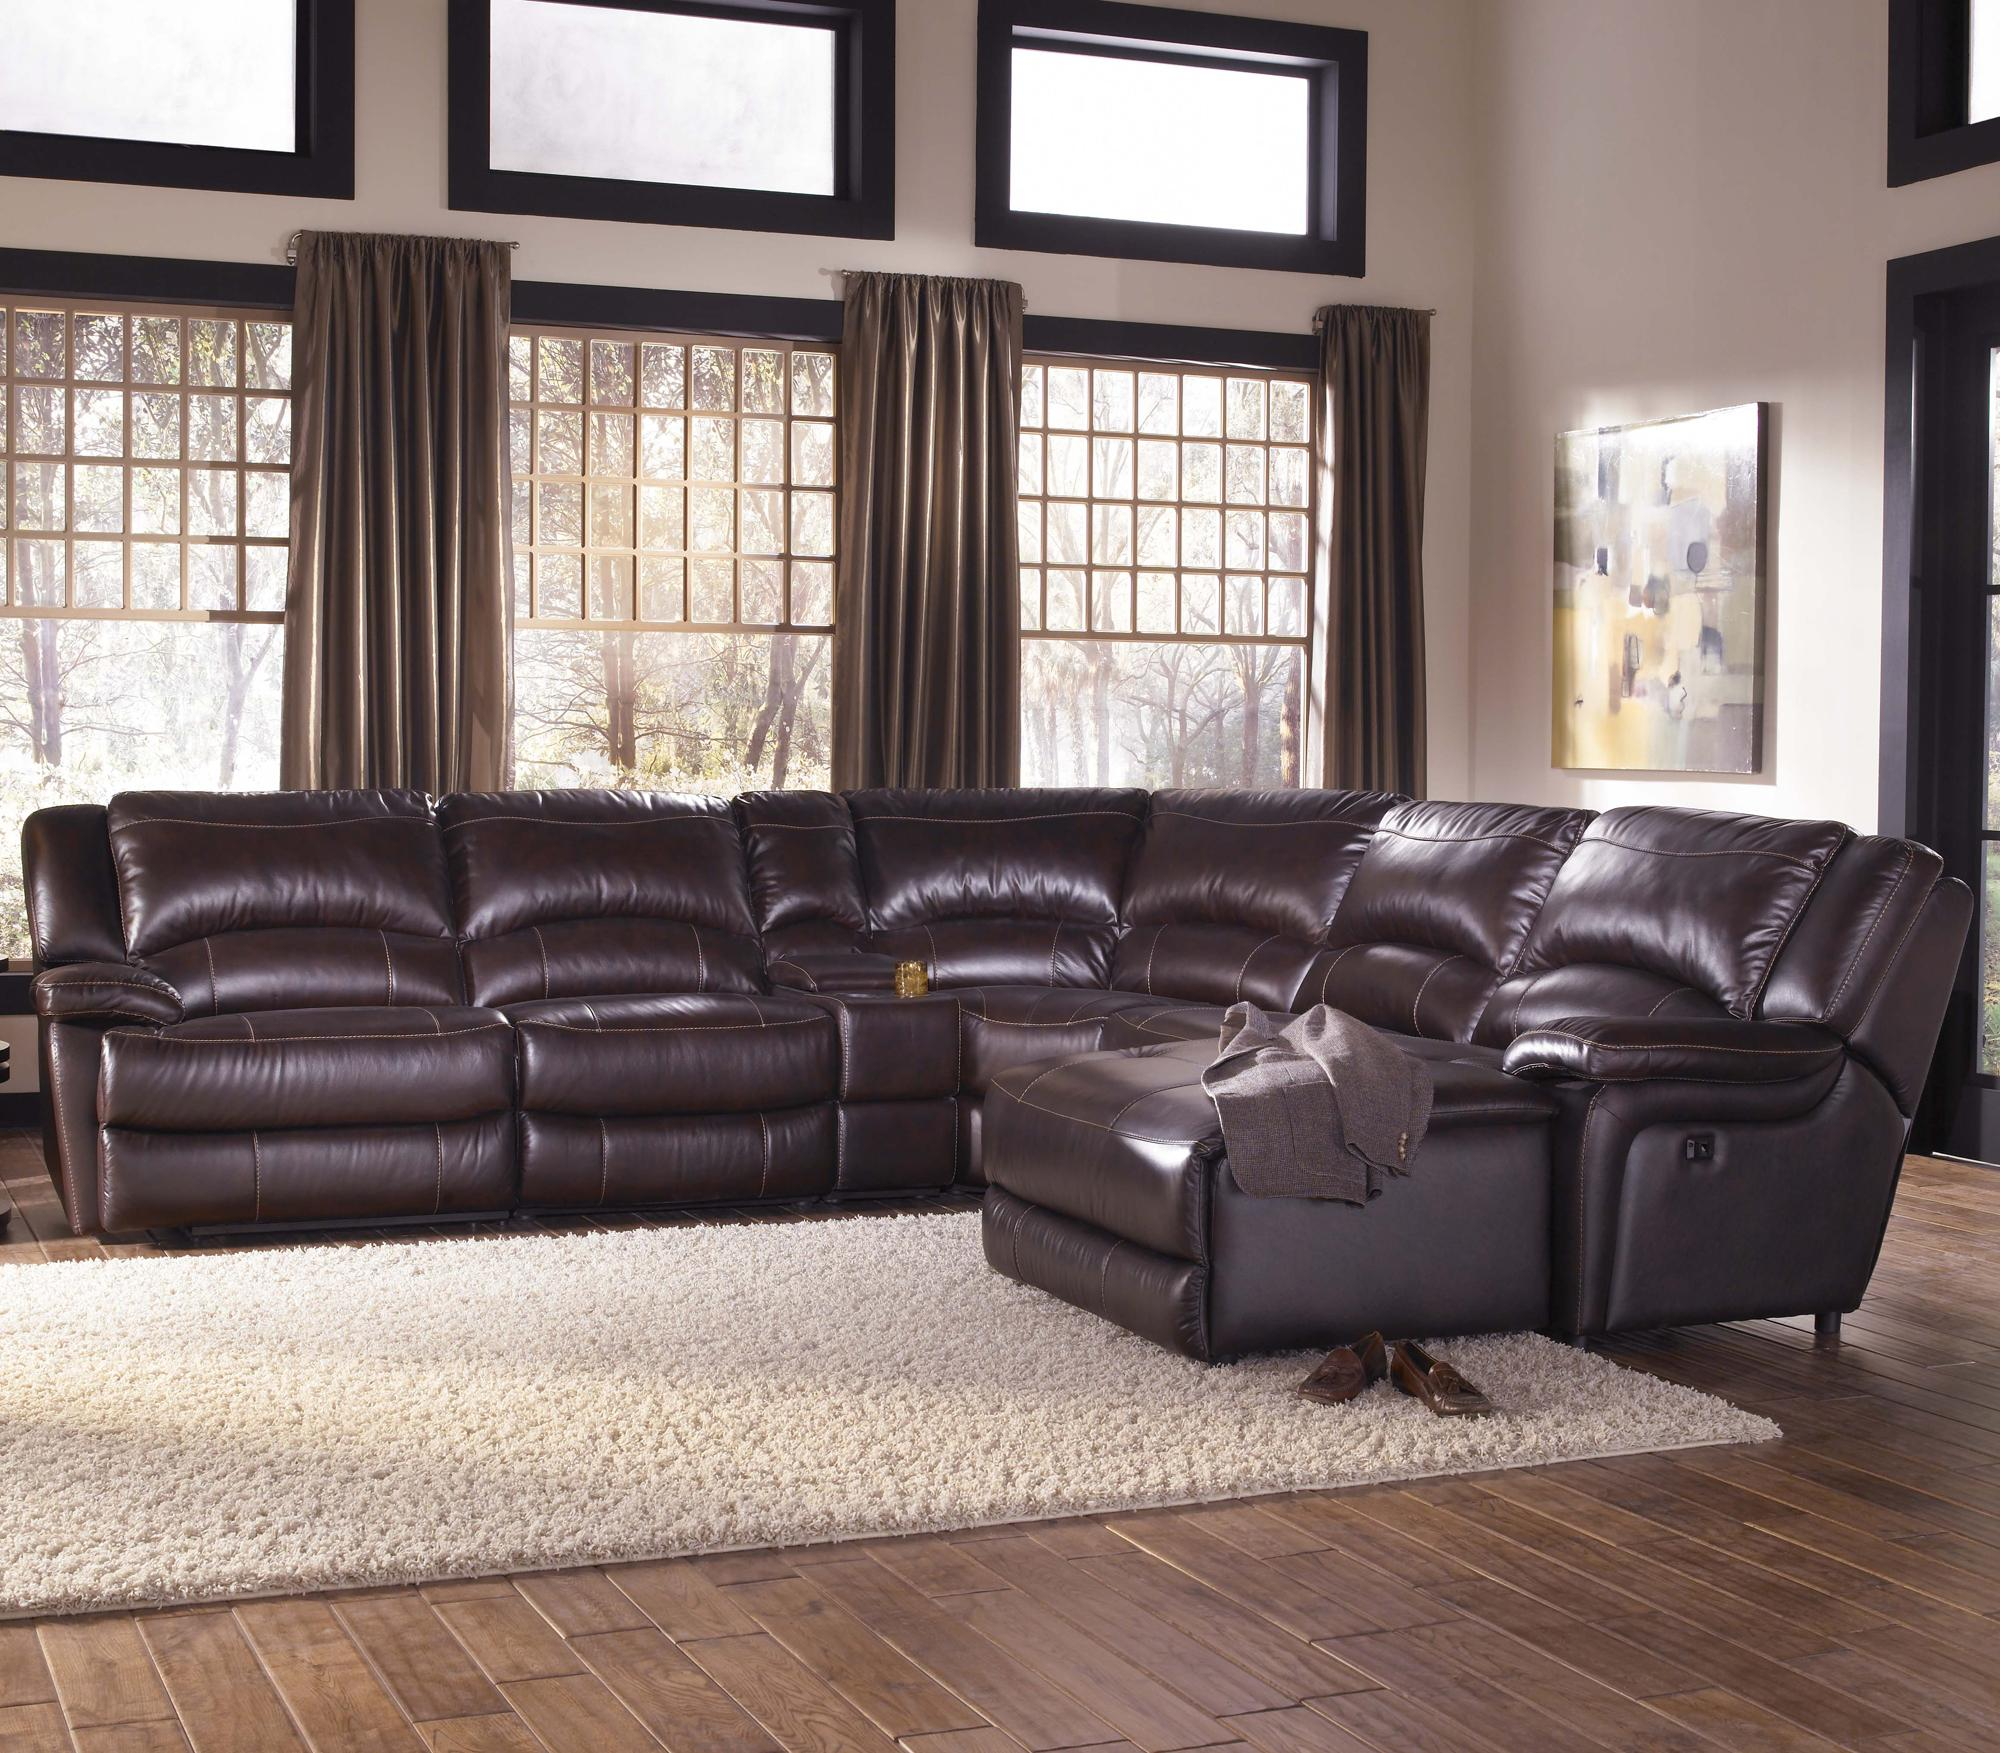 htl sofa range corner sofas uk t118 casual reclining leather sectional with